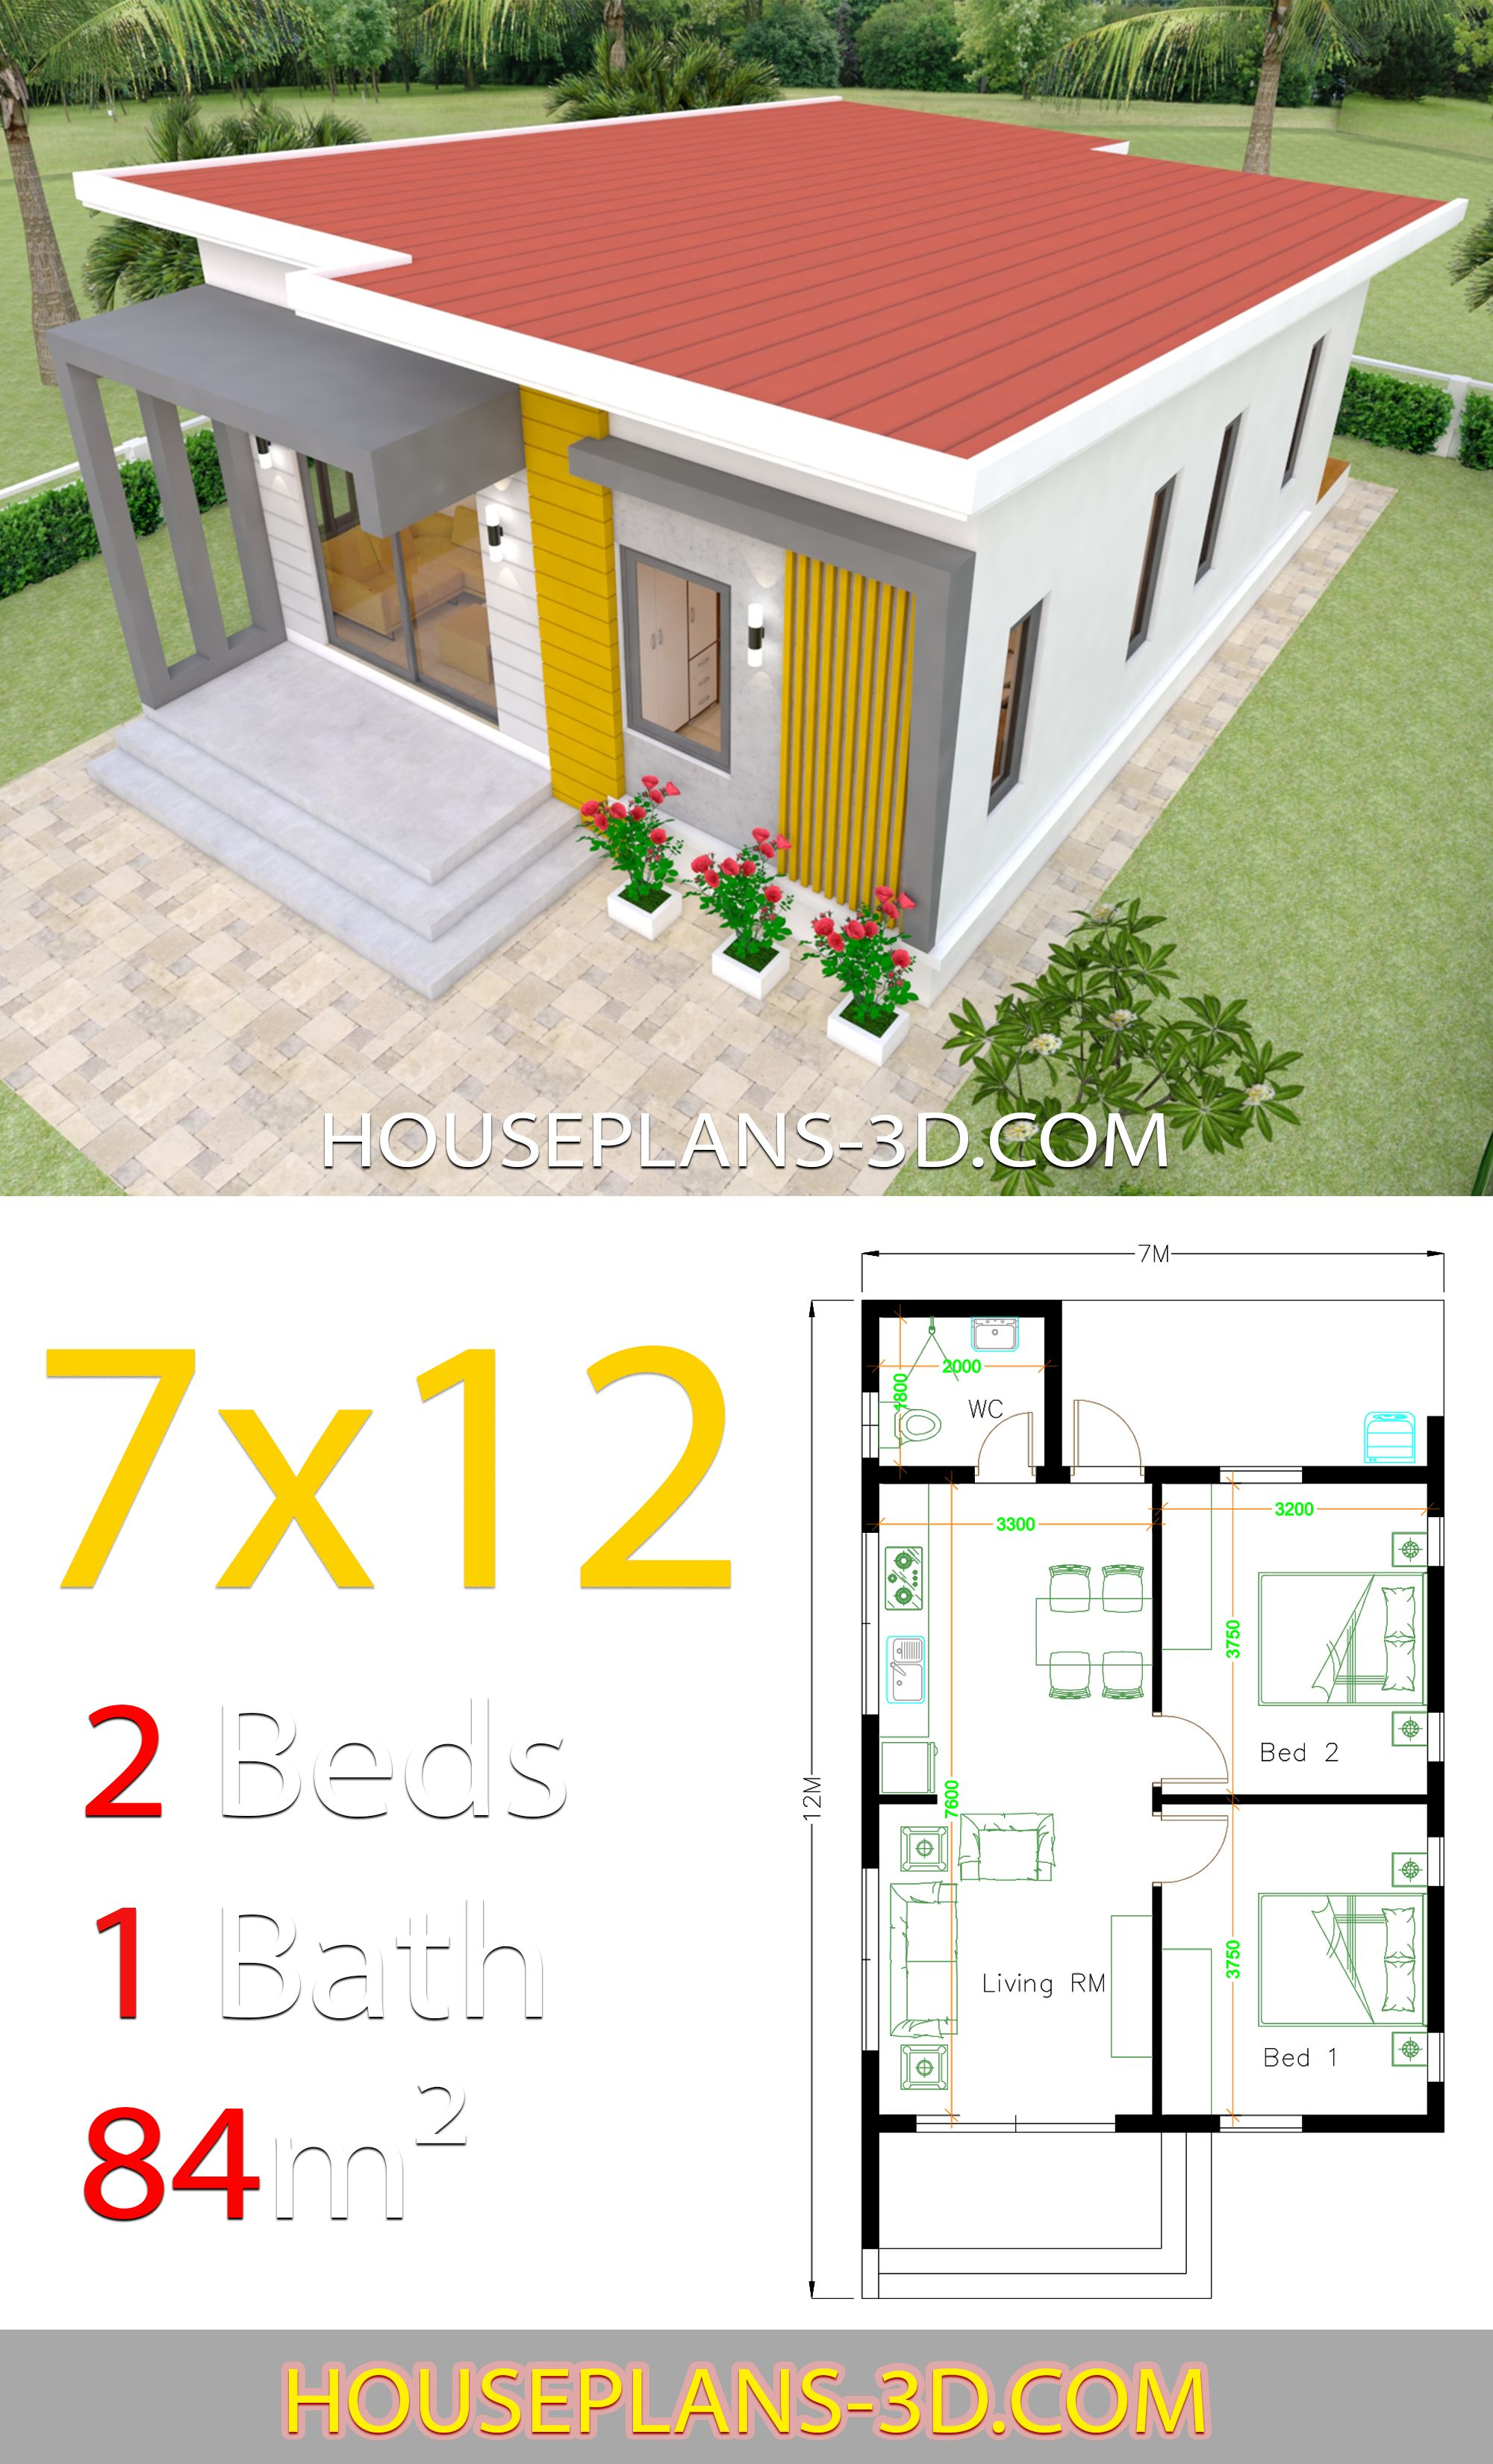 House Design Plans 7x12 With 2 Bedrooms Full Plans House Plans 3d Small House Design Plans Home Design Plans House Design